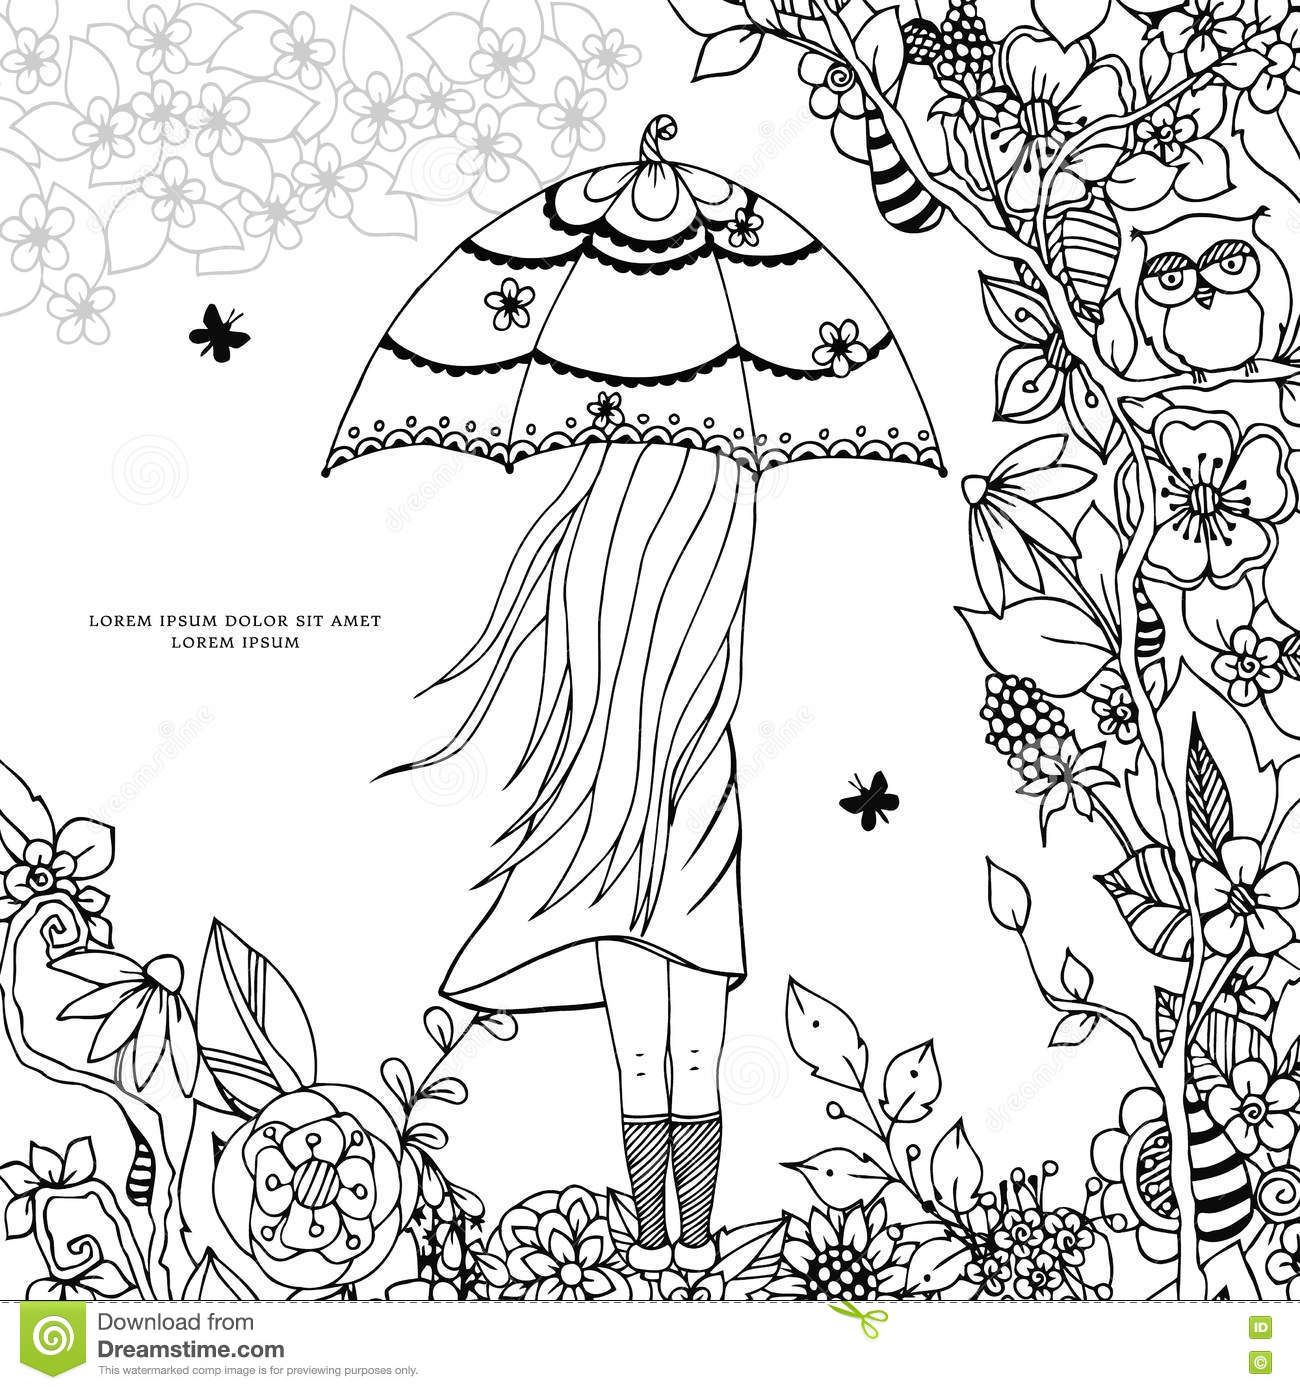 Girl With Umbrella Coloring Pages Umbrella Coloring Page Coloring Pages Coloring Books